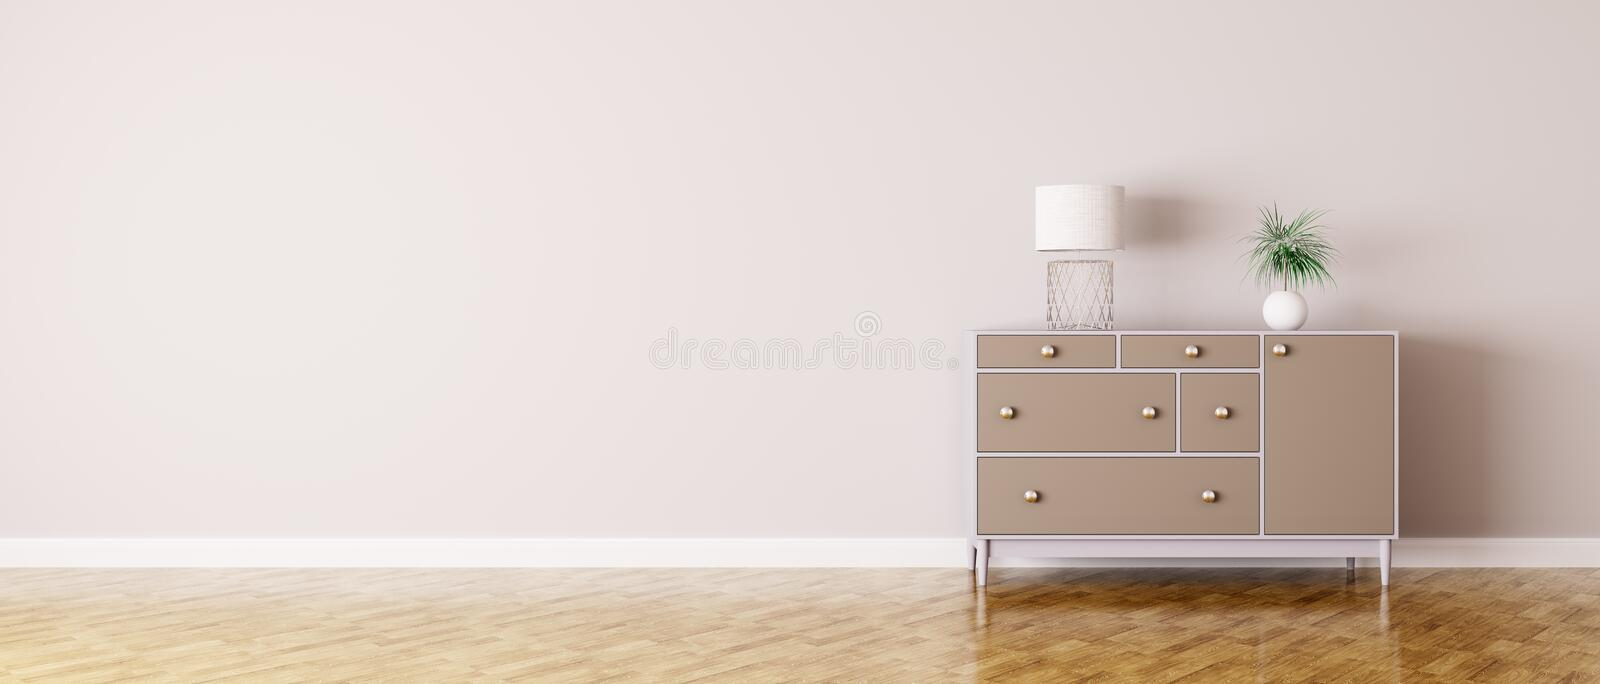 Interior of a room with chest of drawers. Panorama royalty free illustration